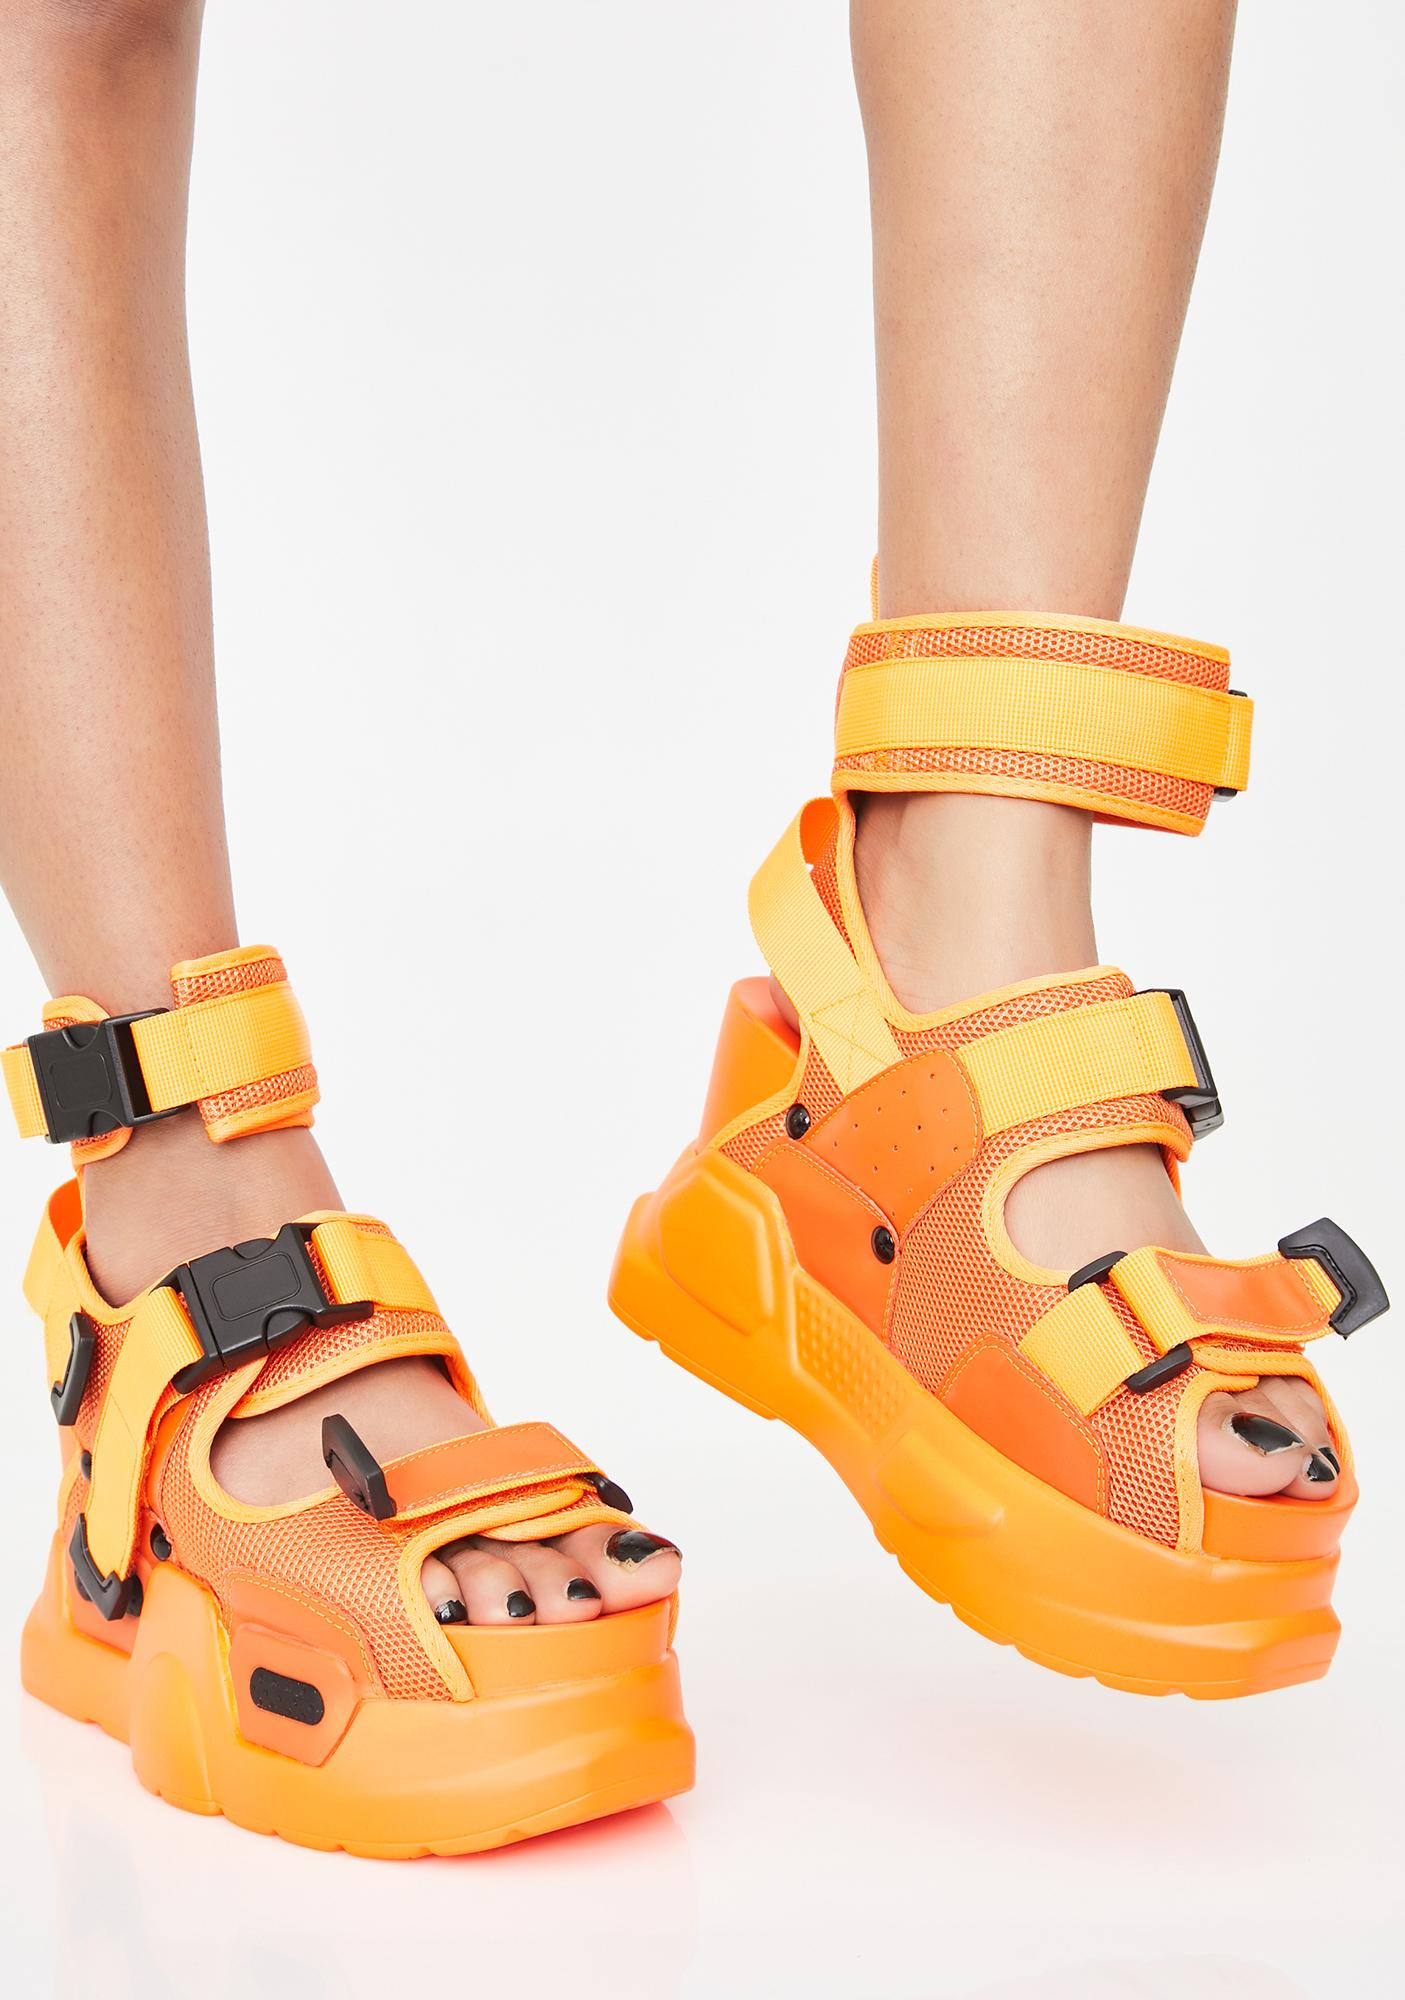 Juicy Daily Hustle Platform Sandals by Anthony Wang